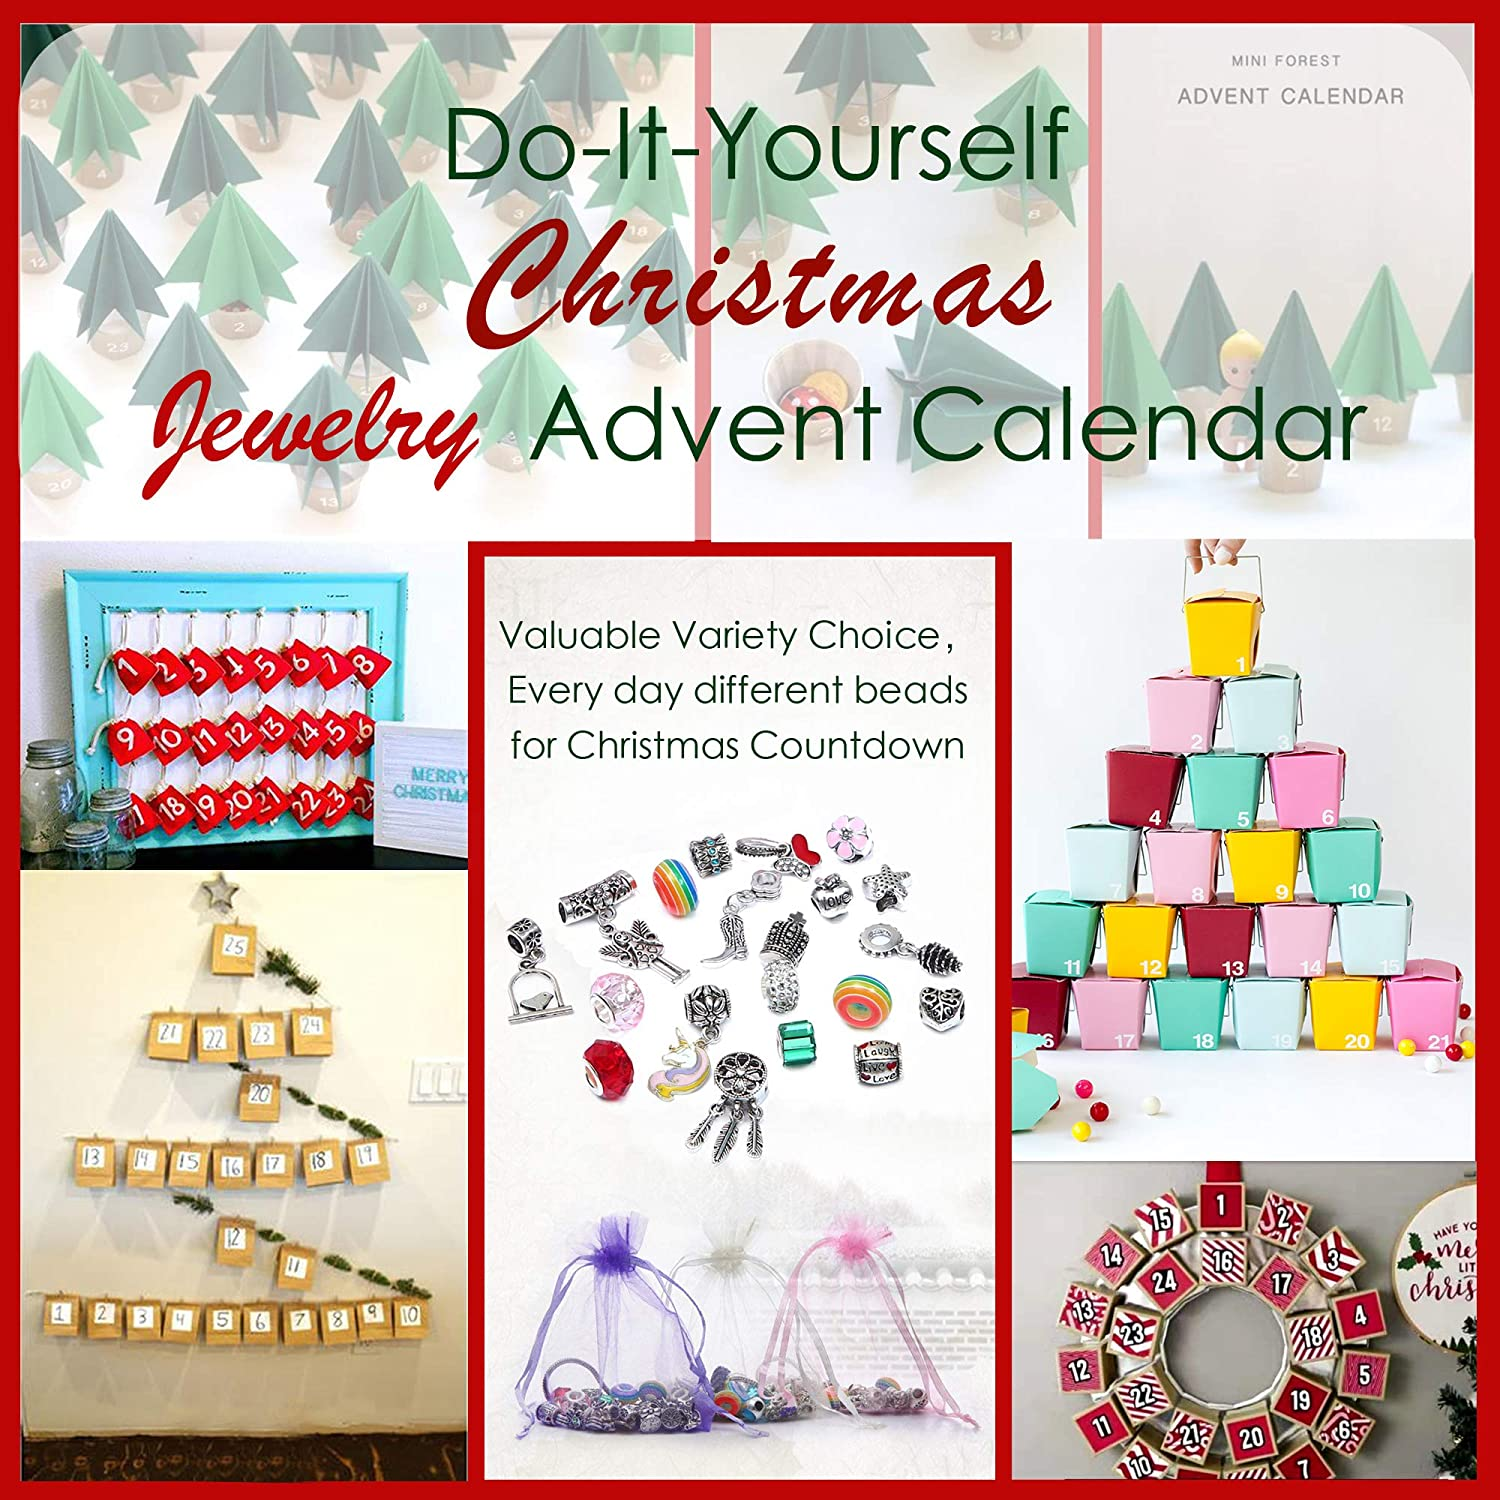 Jewelry Making Kit Charms Bracelets for Making DIY Jewelry Advent Calendar Party Favor Craft Birthday Gifts for Teens Girls DIY Charm Bracelet Making Kit